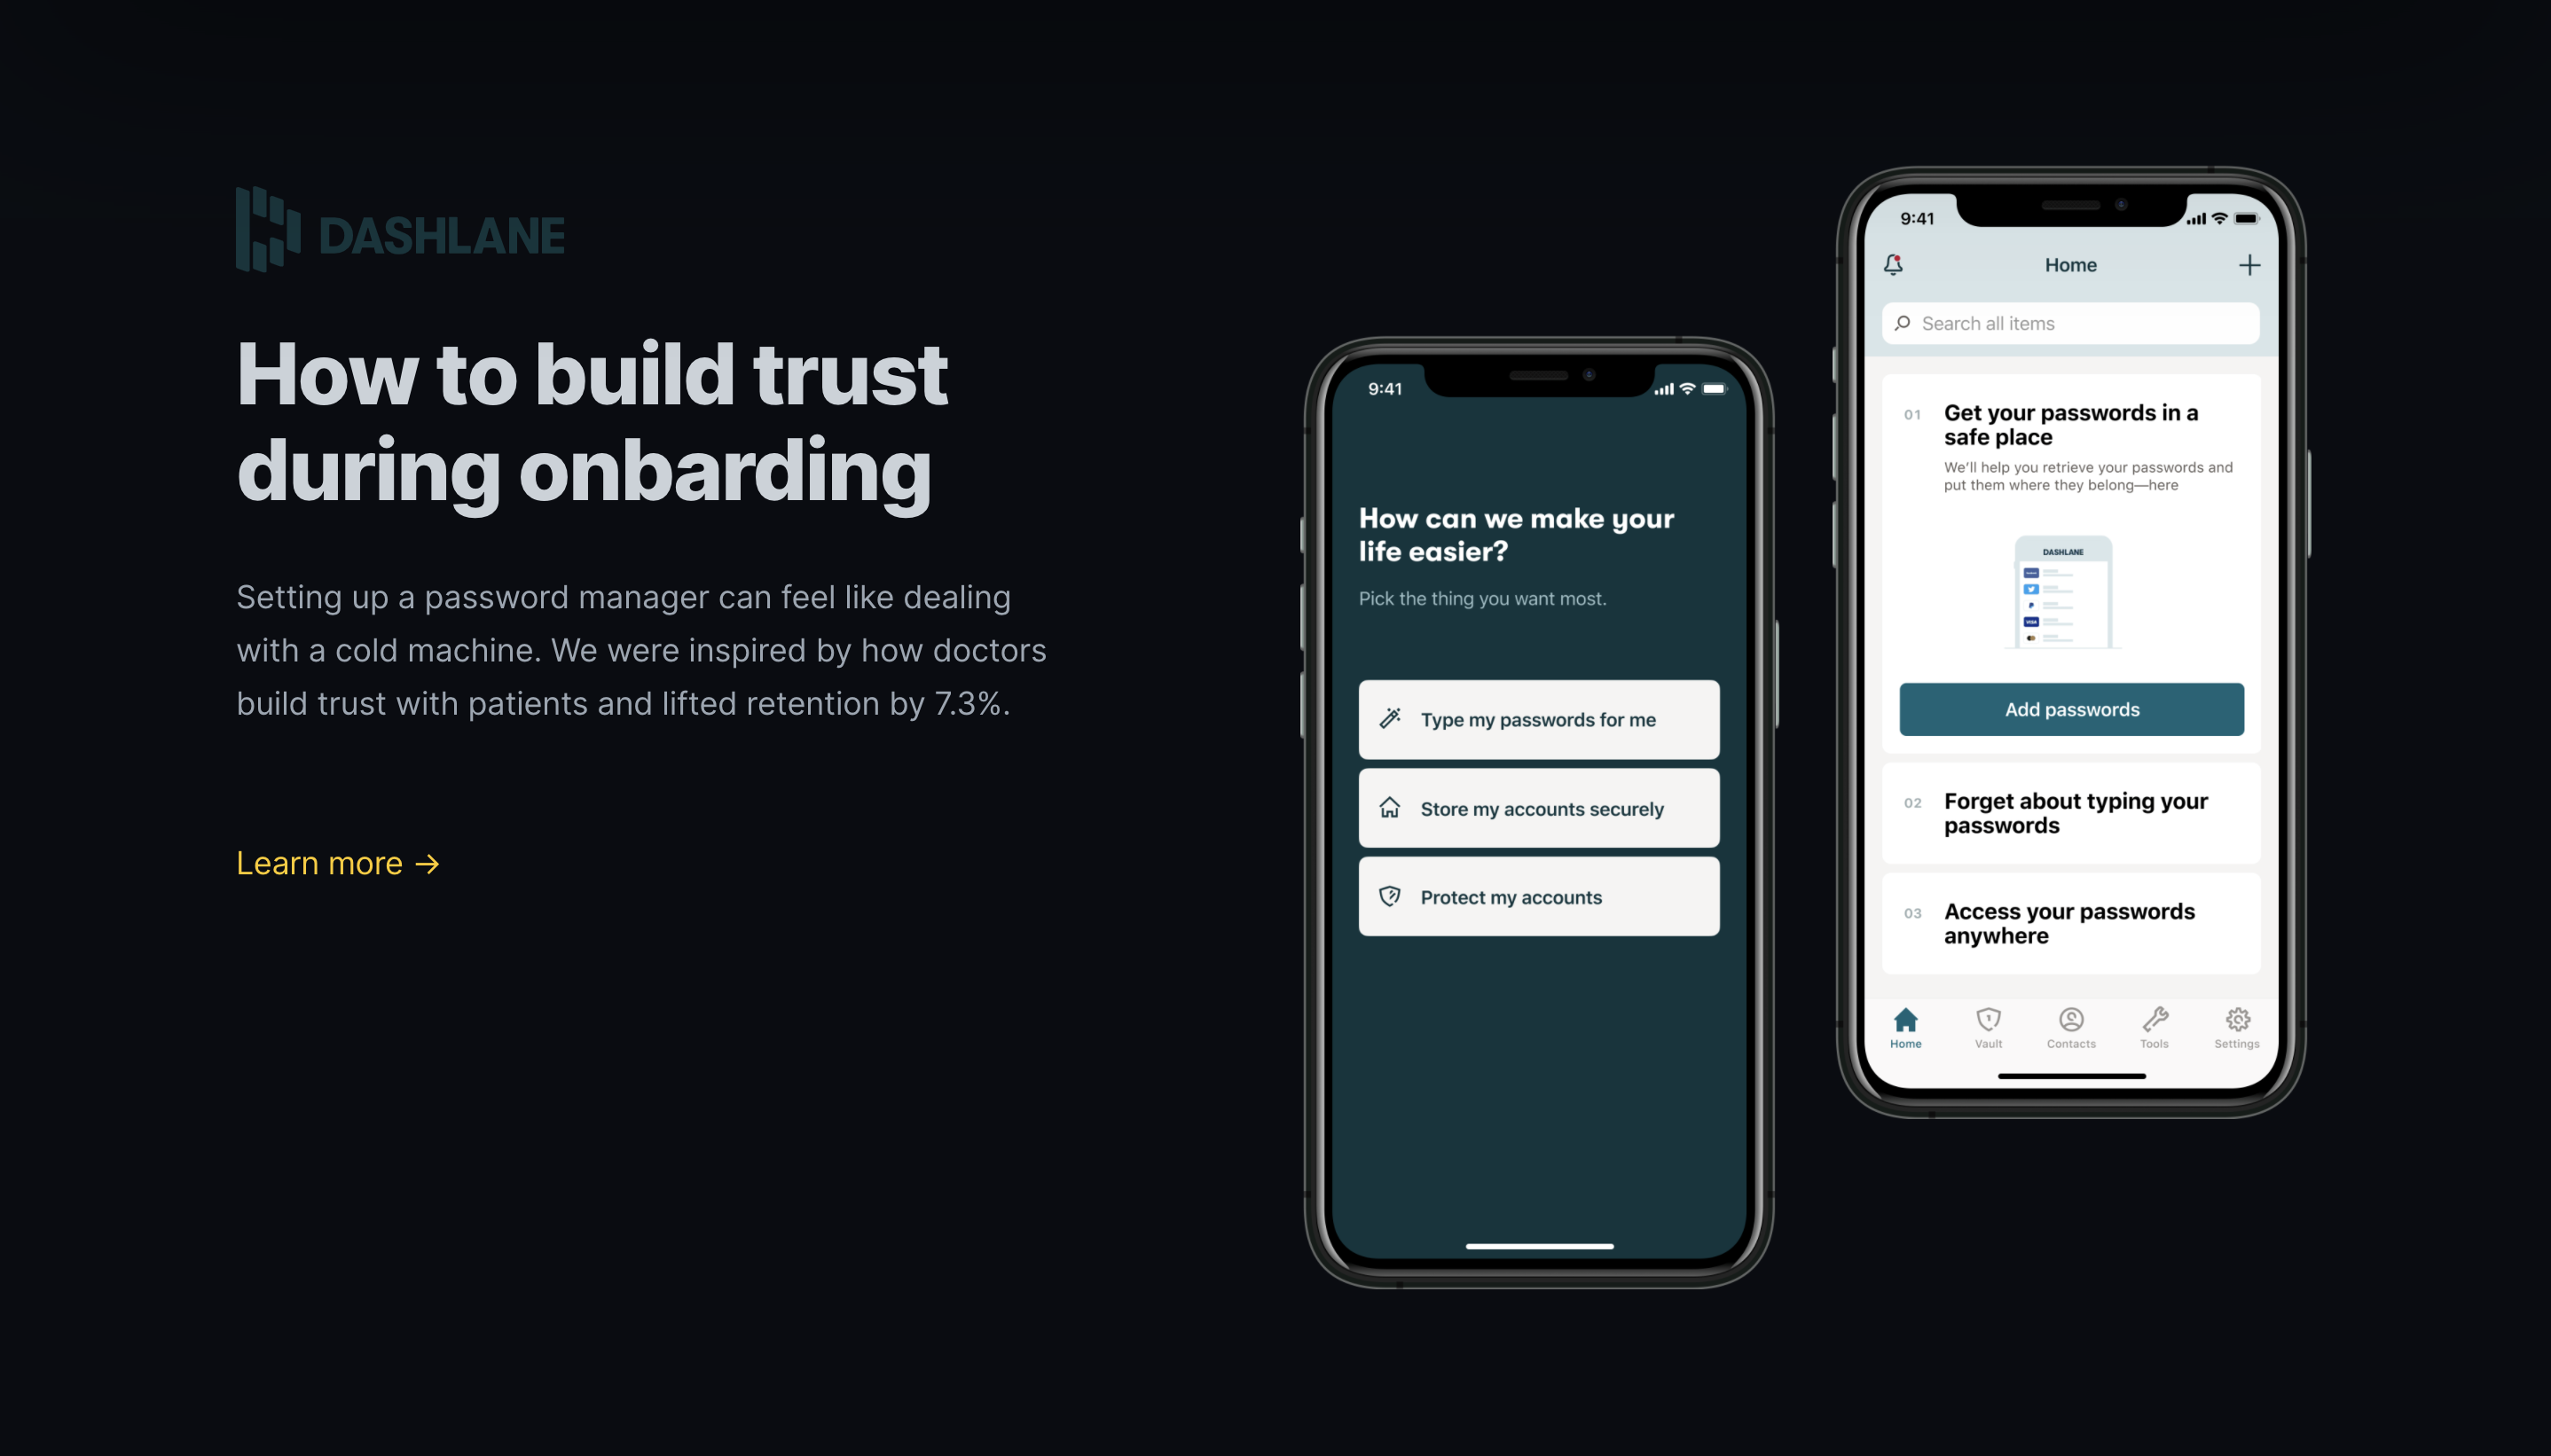 How to build trust during onboarding